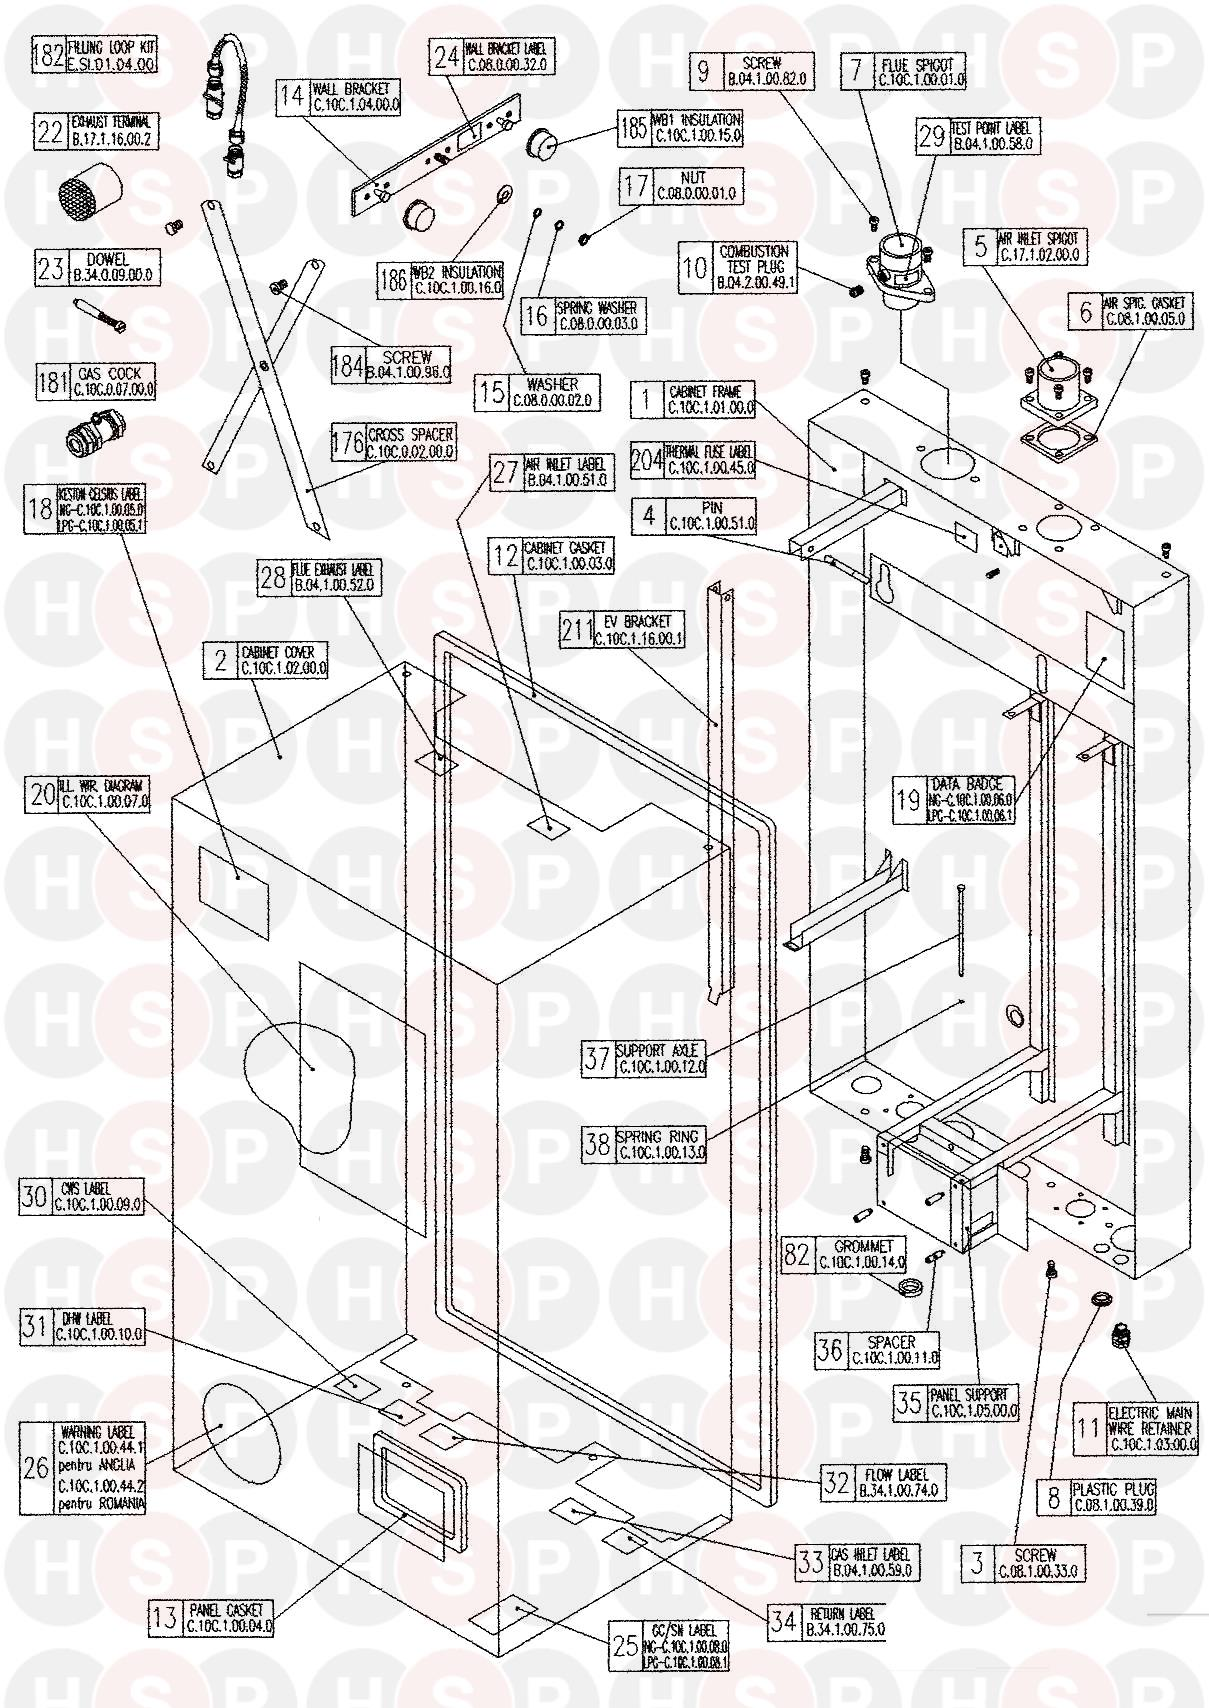 keston keston c36 combi boiler diagram casing heating spare parts click the diagram to open it on a new page